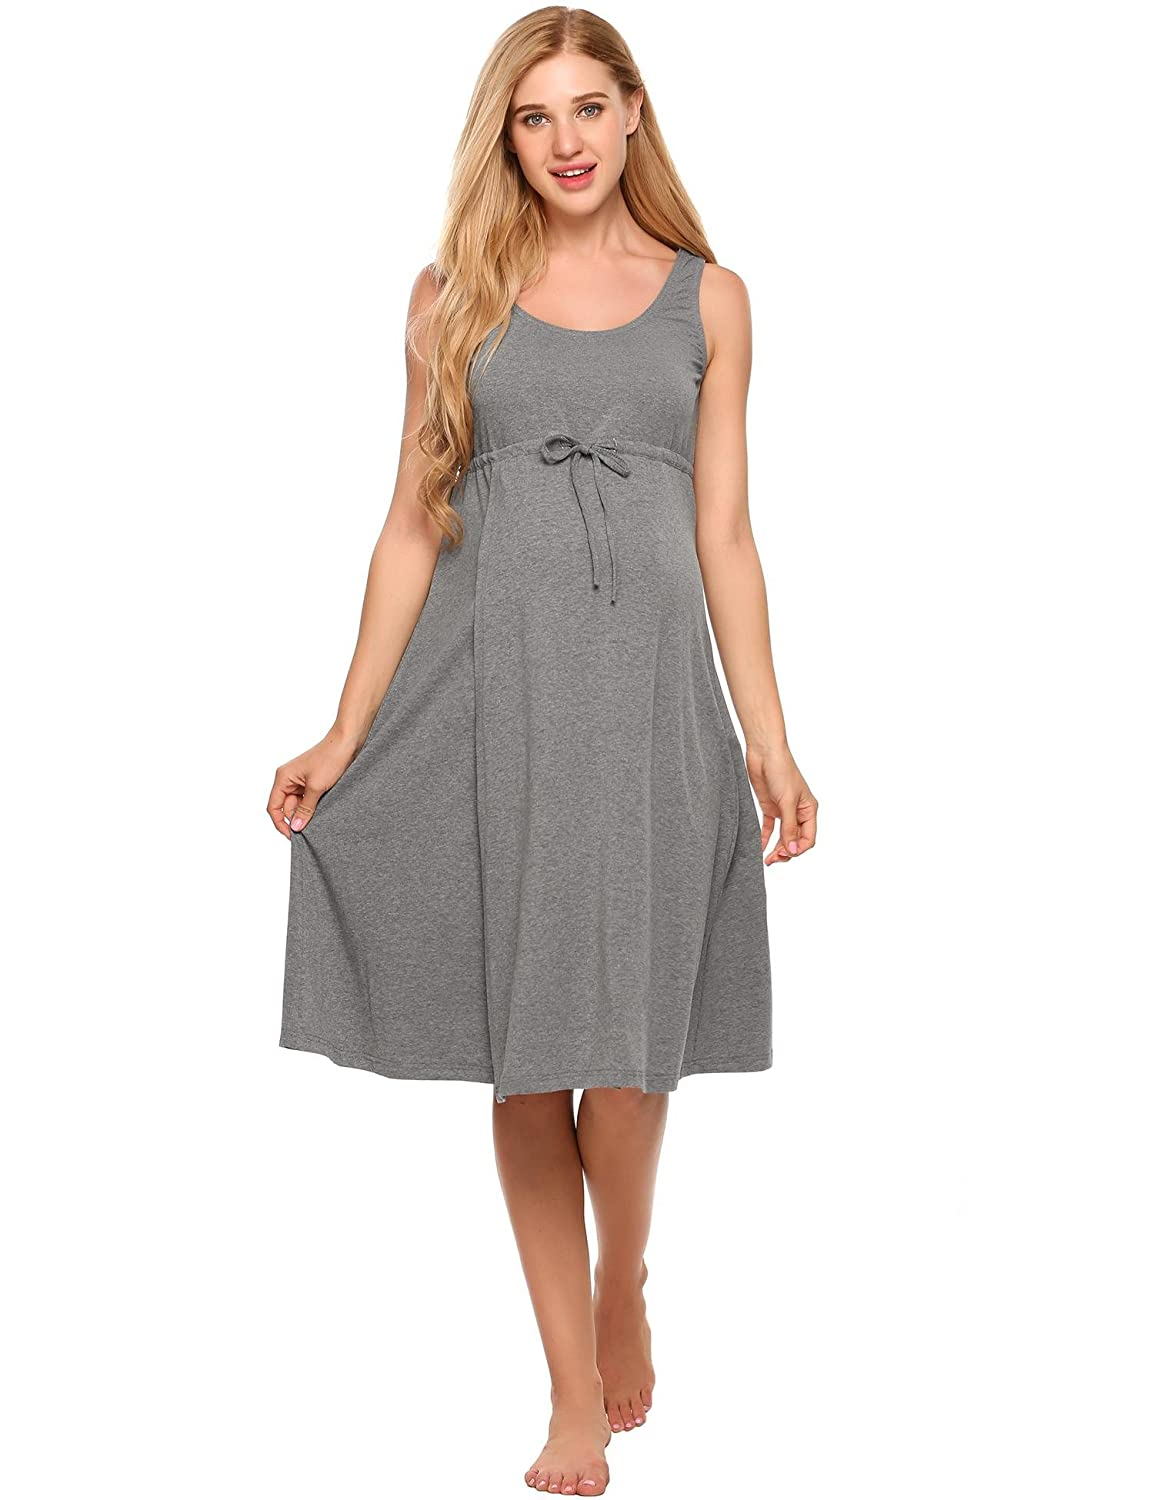 0dc89ea0a6b Women sleeveless nightgown features pull-aside nursing access openings for  breastfeeding